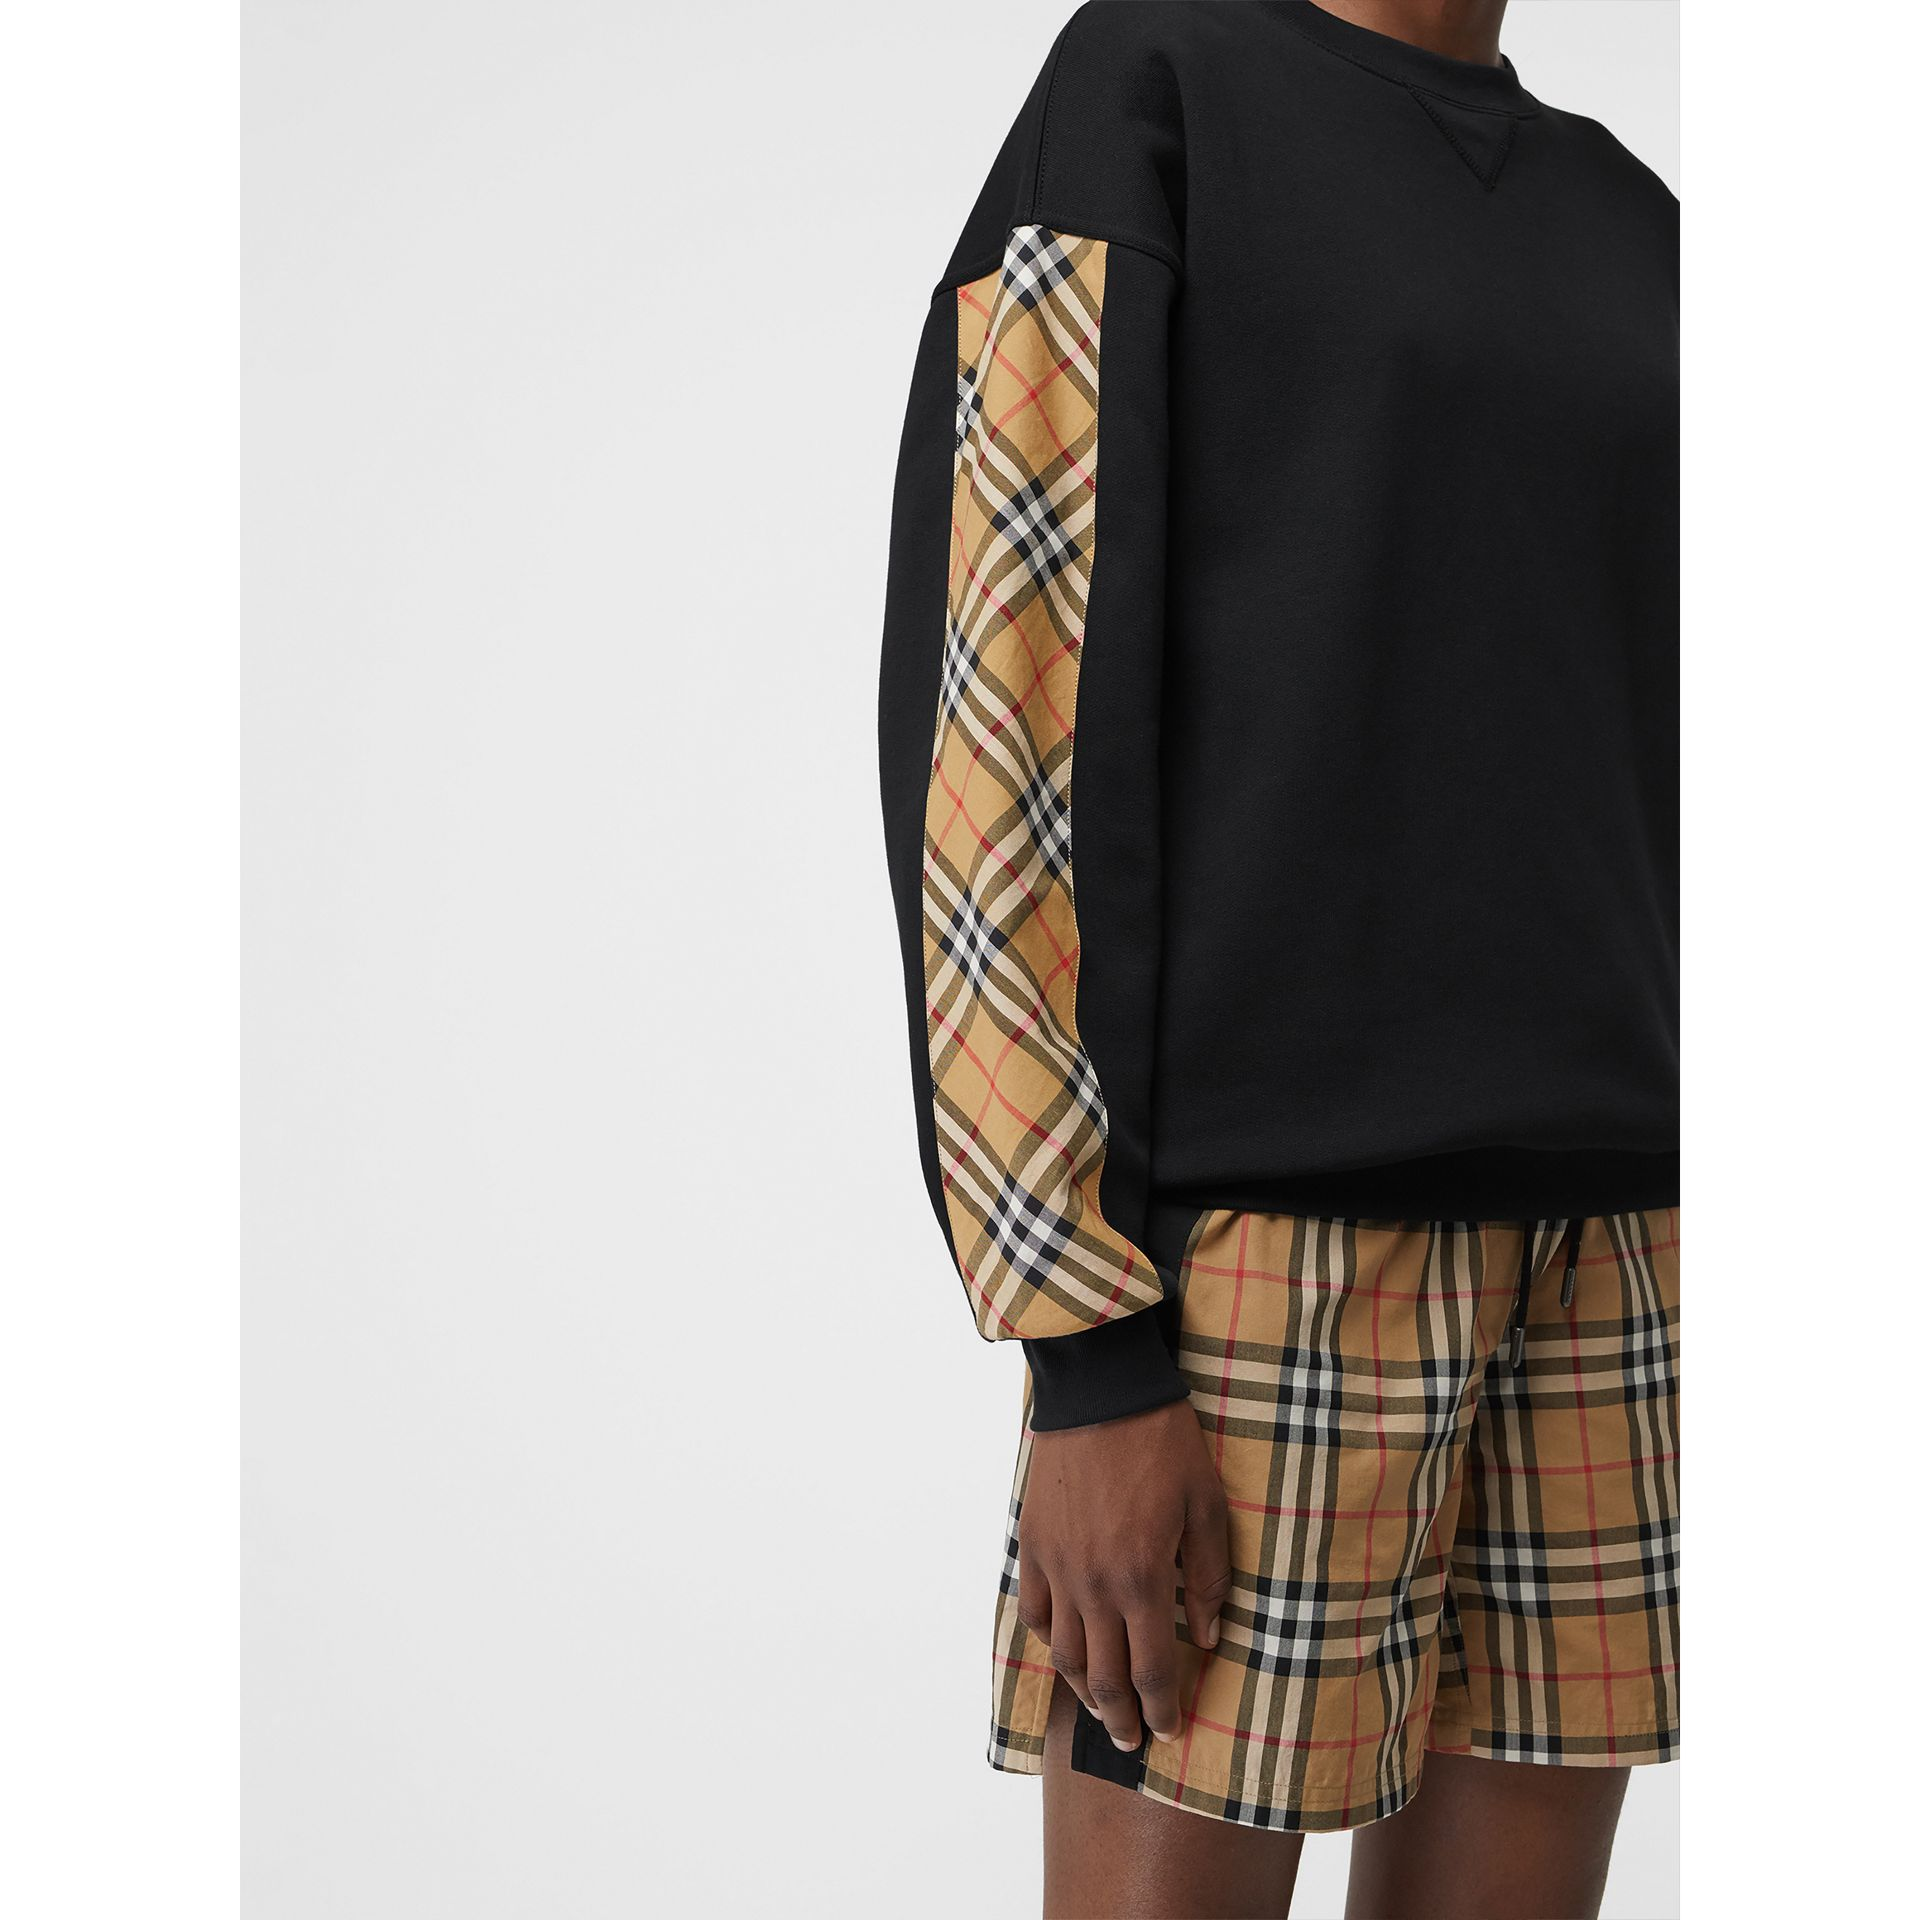 Sweat-shirt en jersey avec détails Vintage check (Noir) - Femme | Burberry - photo de la galerie 1